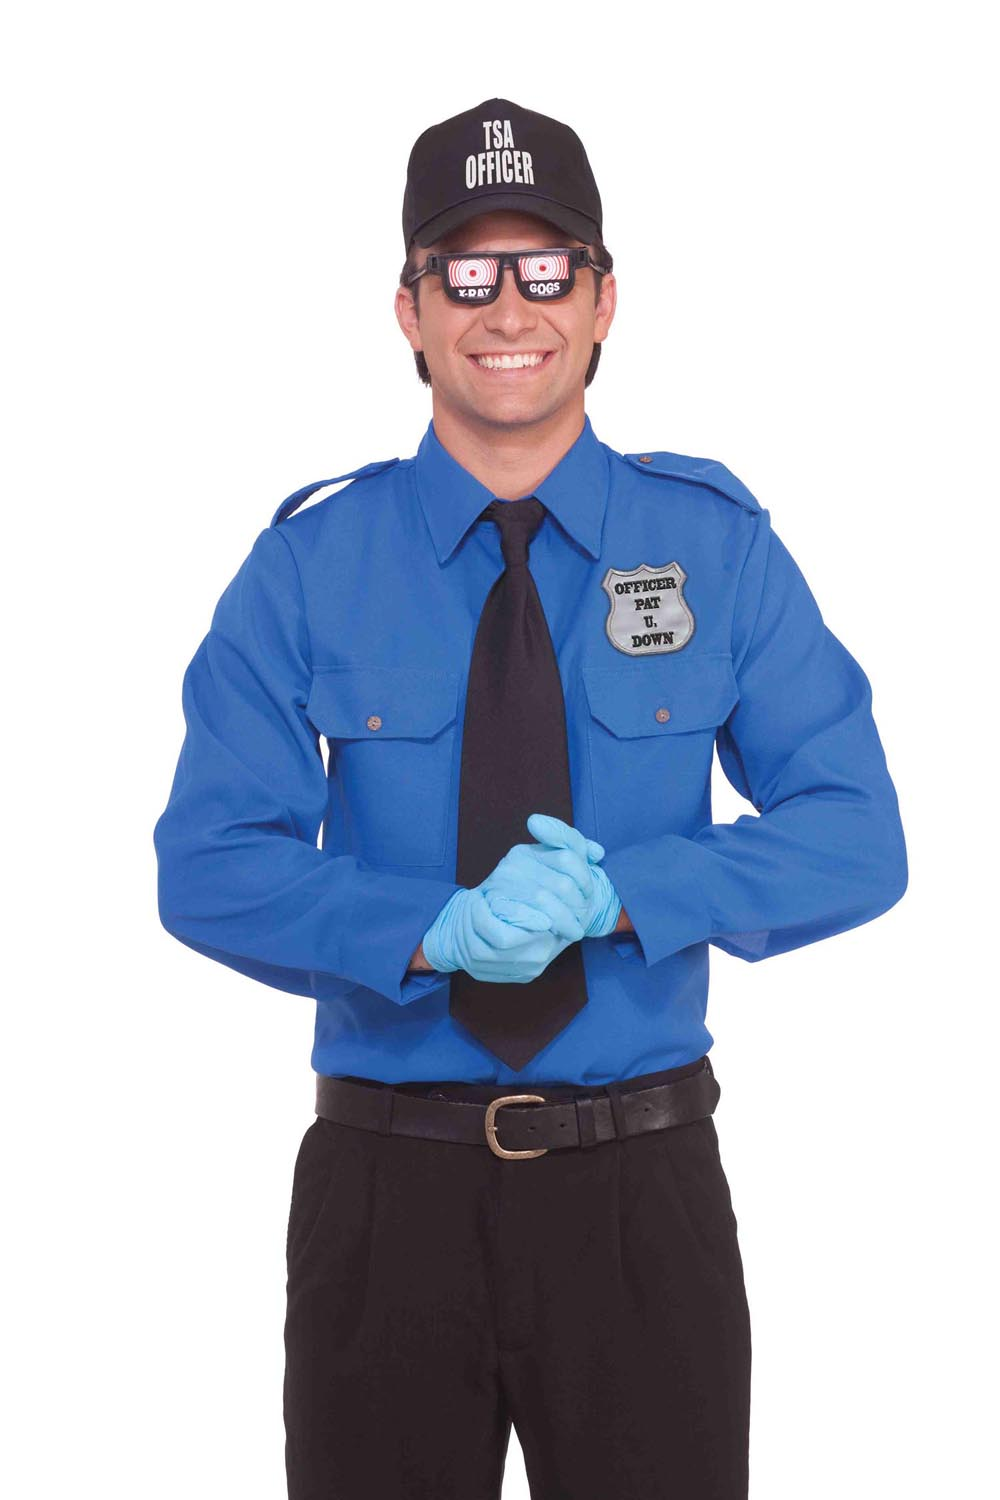 tsa transportation security officer funny adult costume walmartcom - Transportation Security Officer